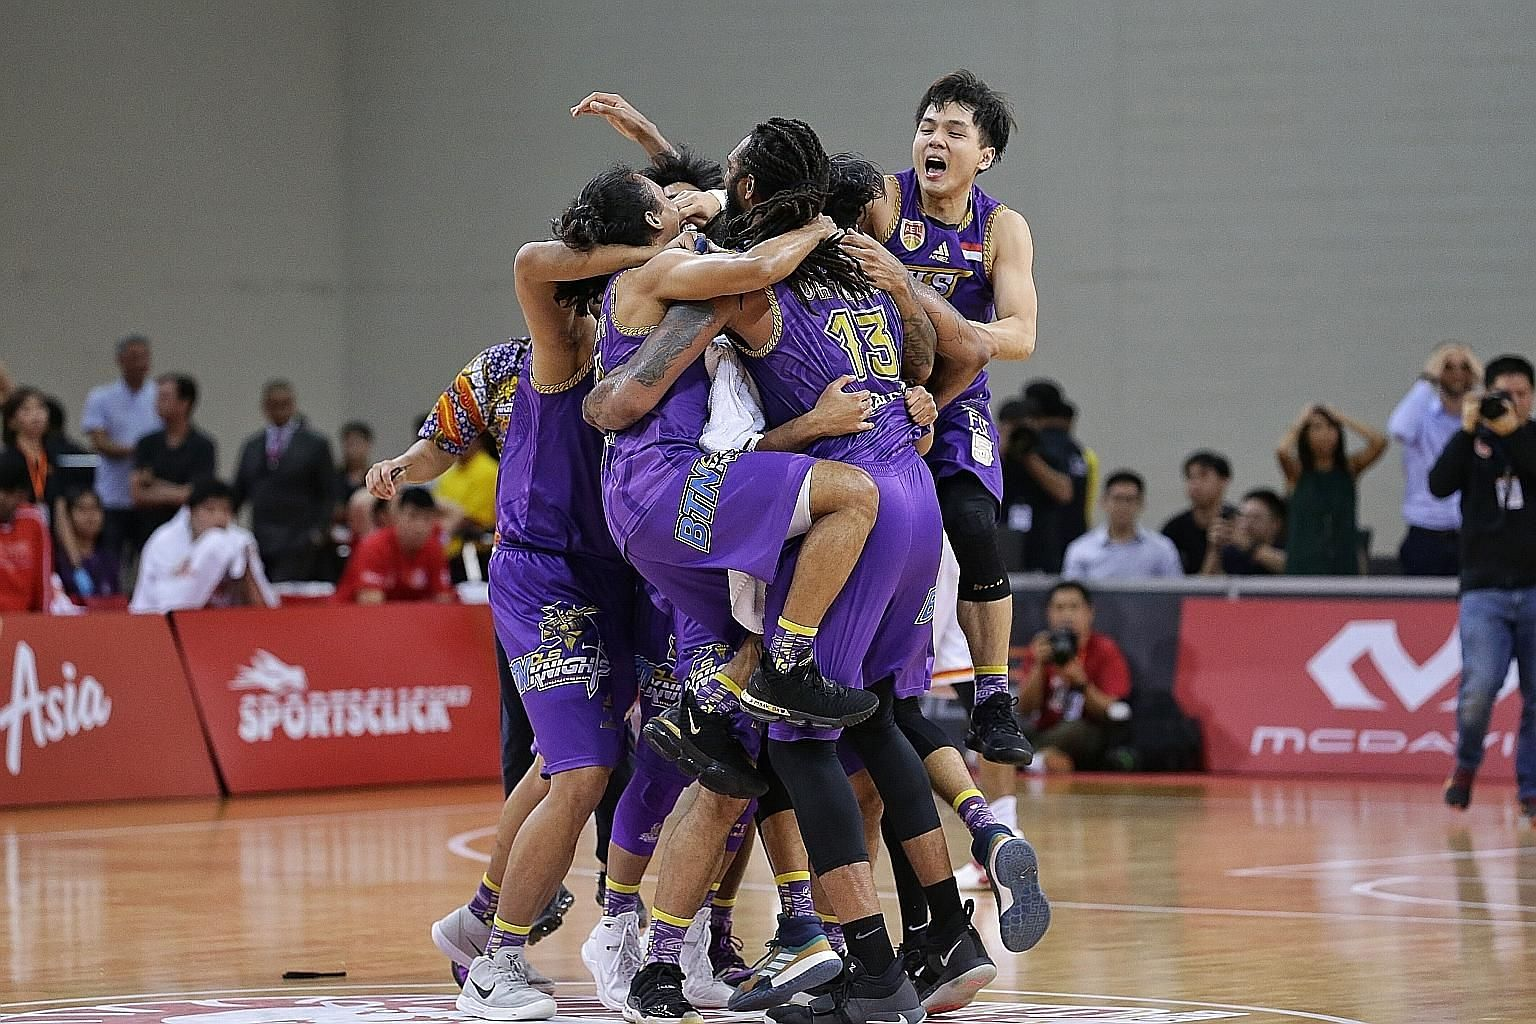 Top: CLS Knights Indonesia celebrate their maiden Asean Basketball League championship win. They beat the Singapore Slingers 84-81 yesterday. ST PHOTO: KEVIN LIM